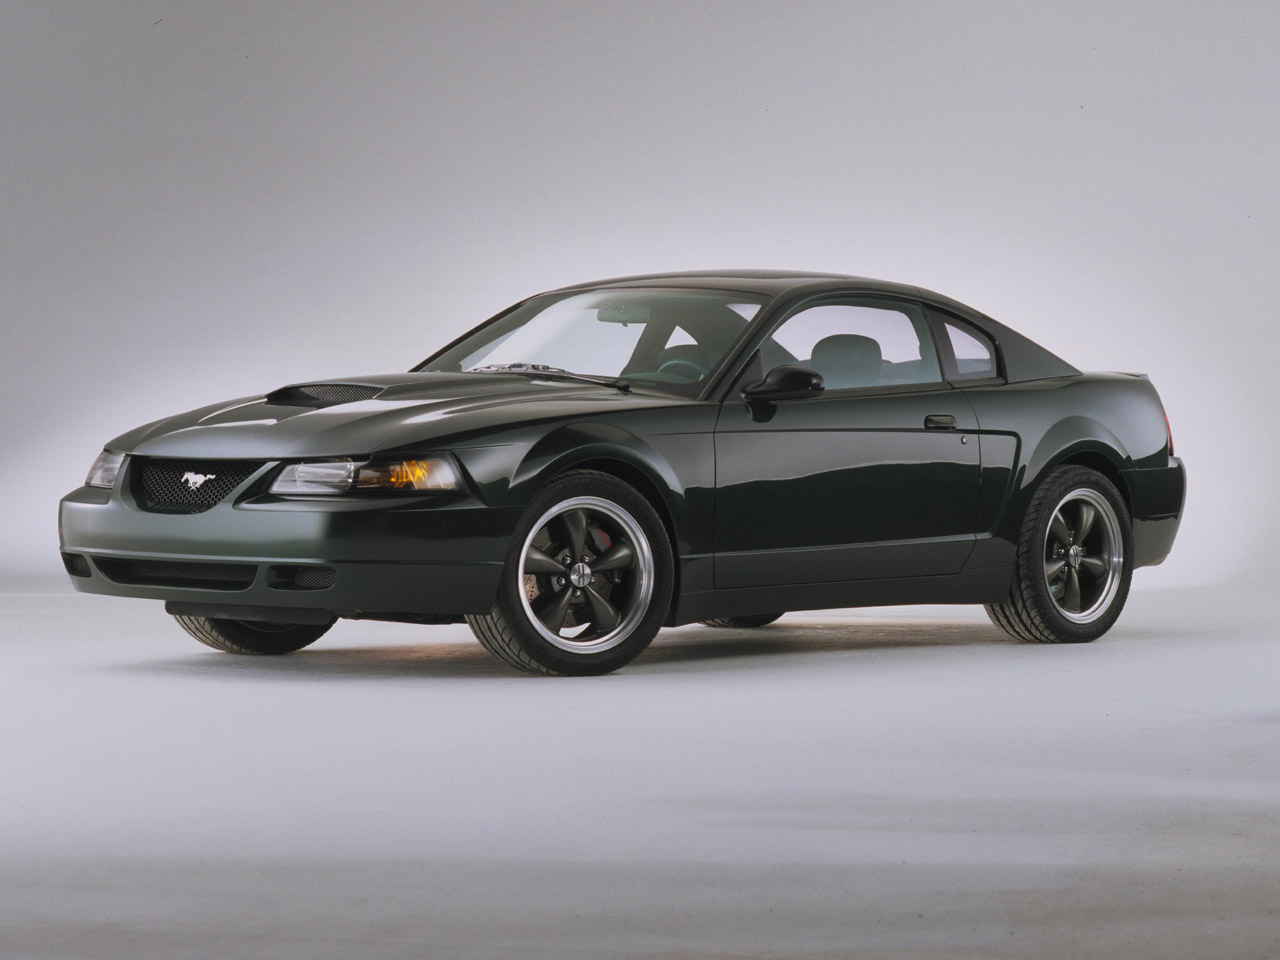 2001 Ford Mustang Bullitt GT on 2003 ford explorer